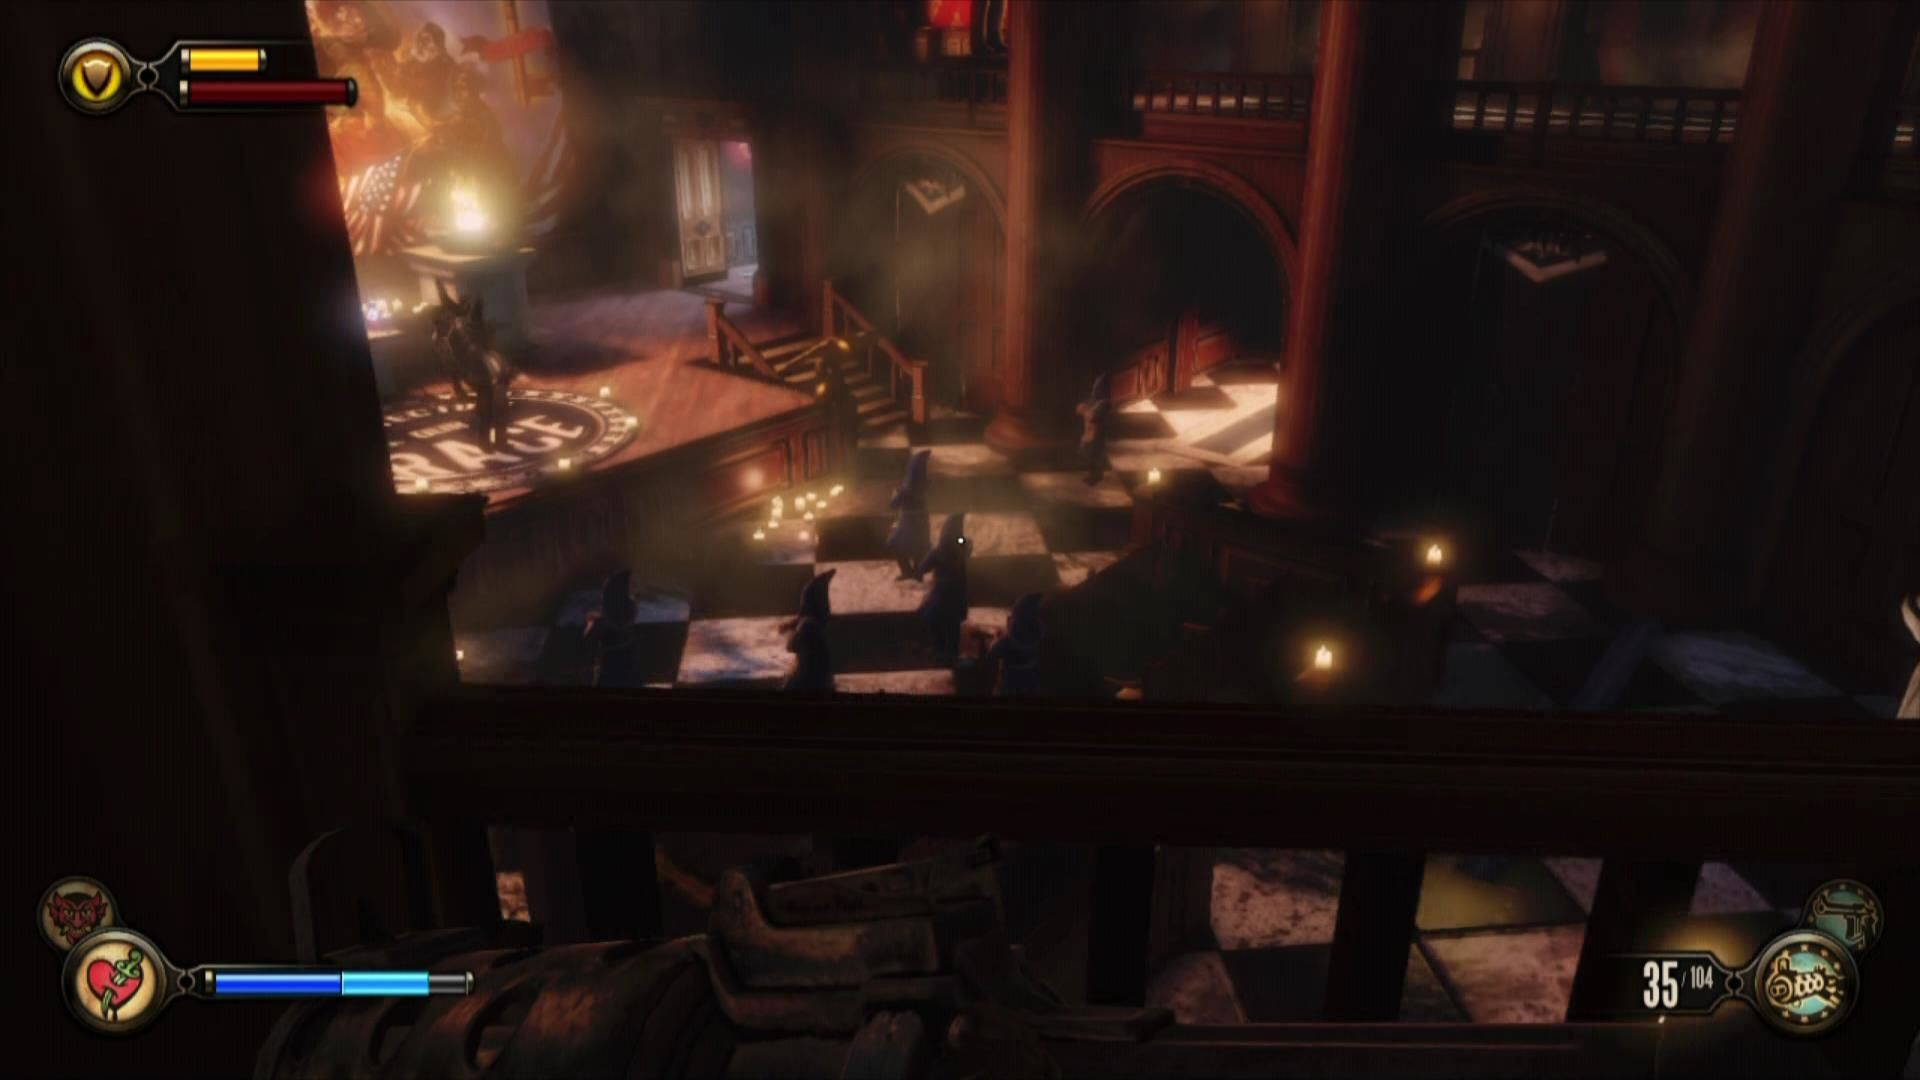 BioShock Infinite Xbox 360 Watch a very weird meeting with hooded figures